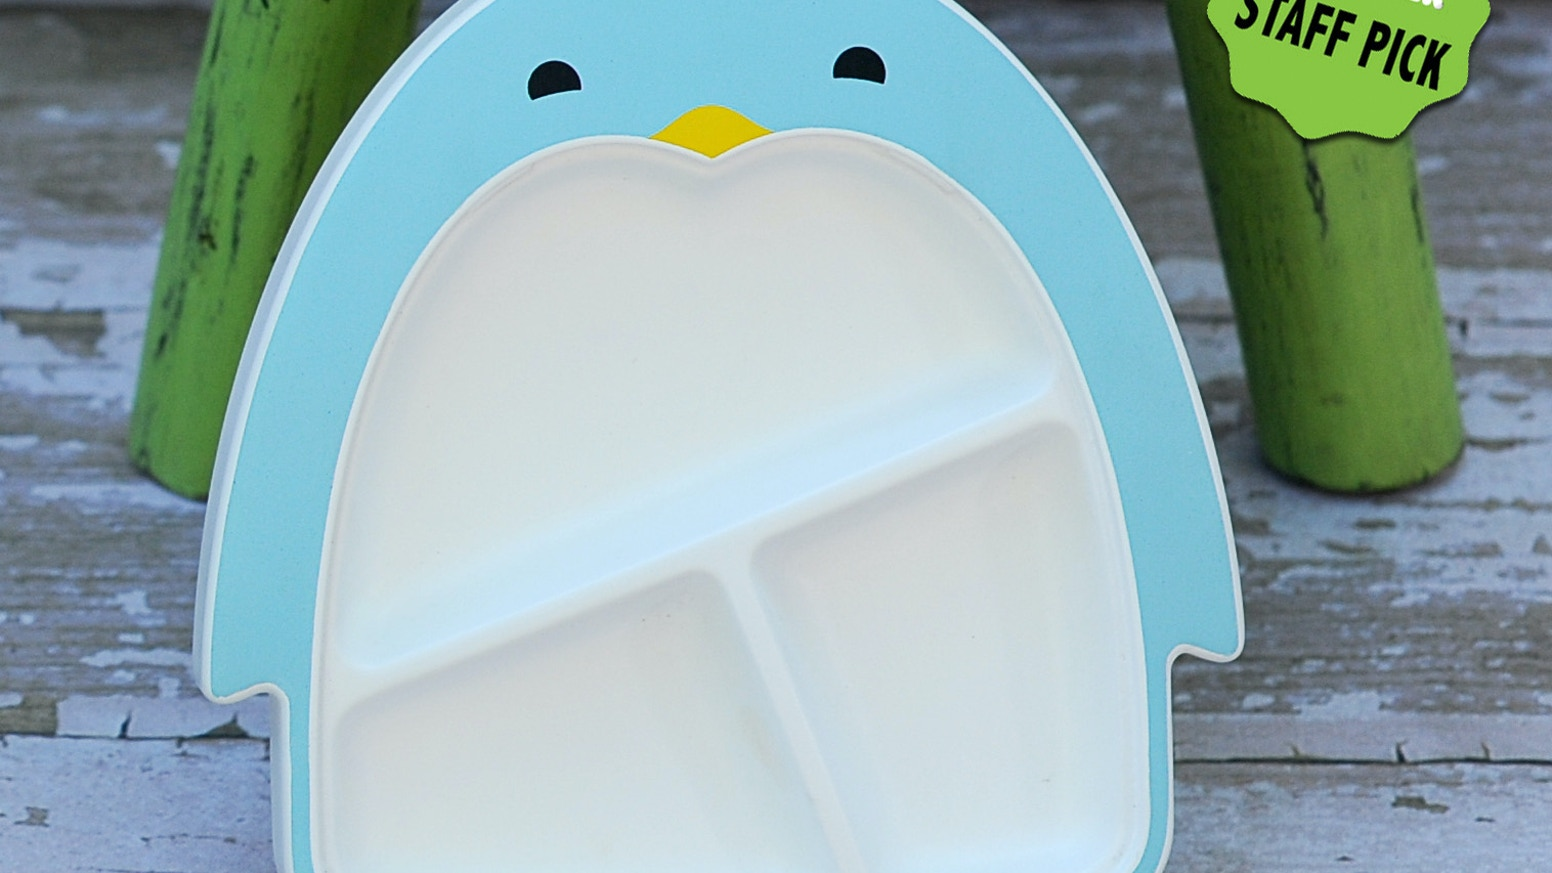 Finally, a kid's plate that really stays put so you can enjoy mealtime.